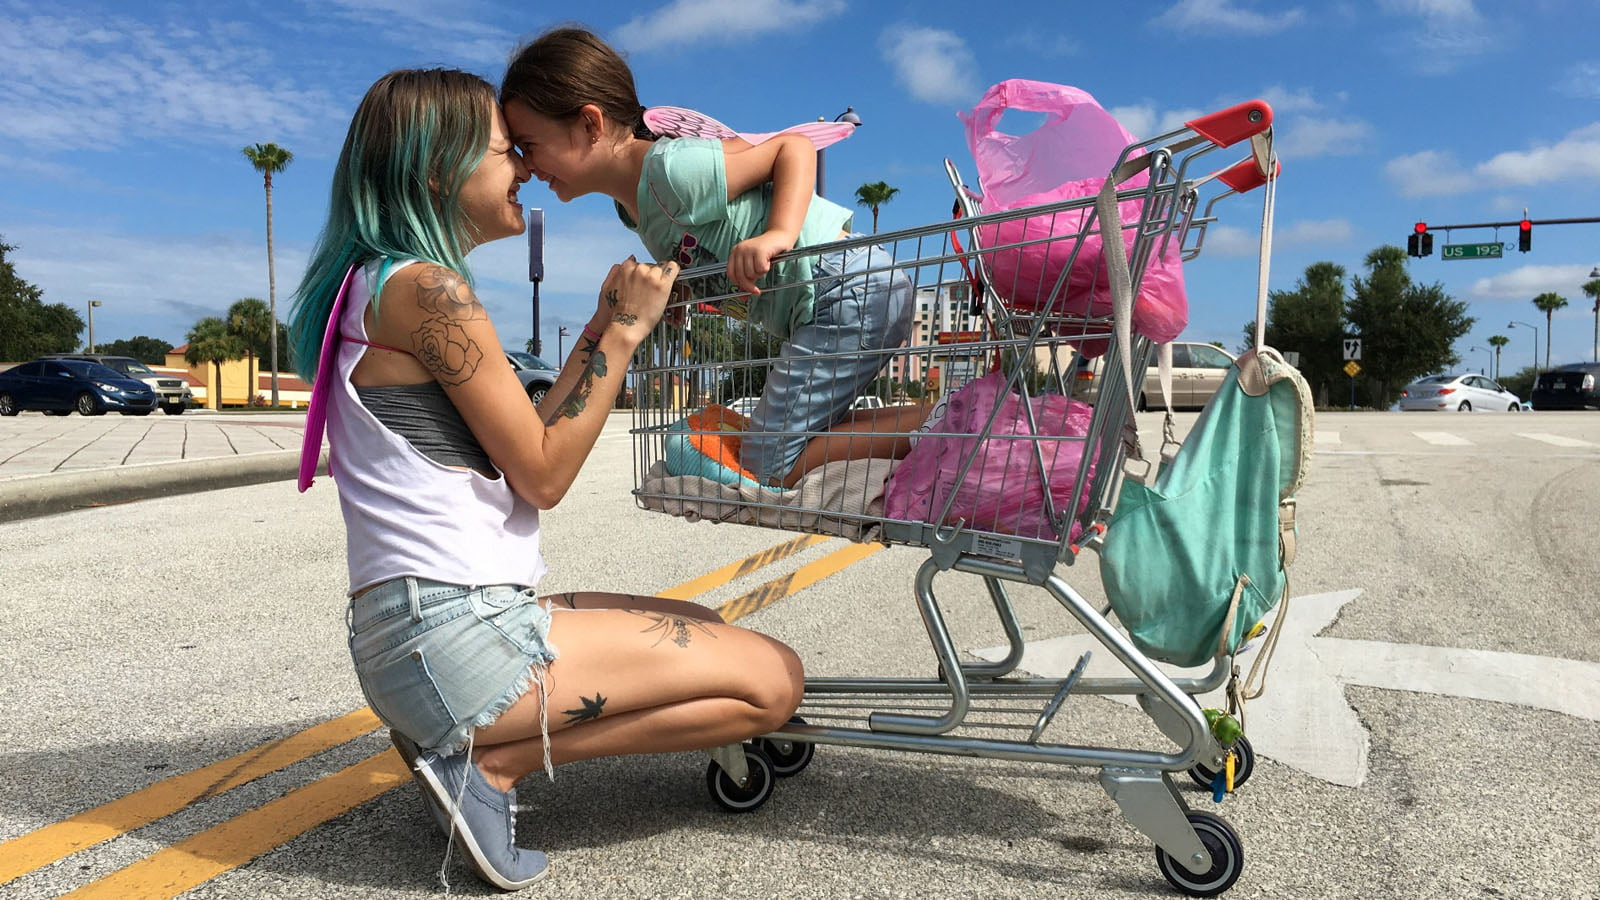 Monday 20.08.18. – 9pm: The Florida Project